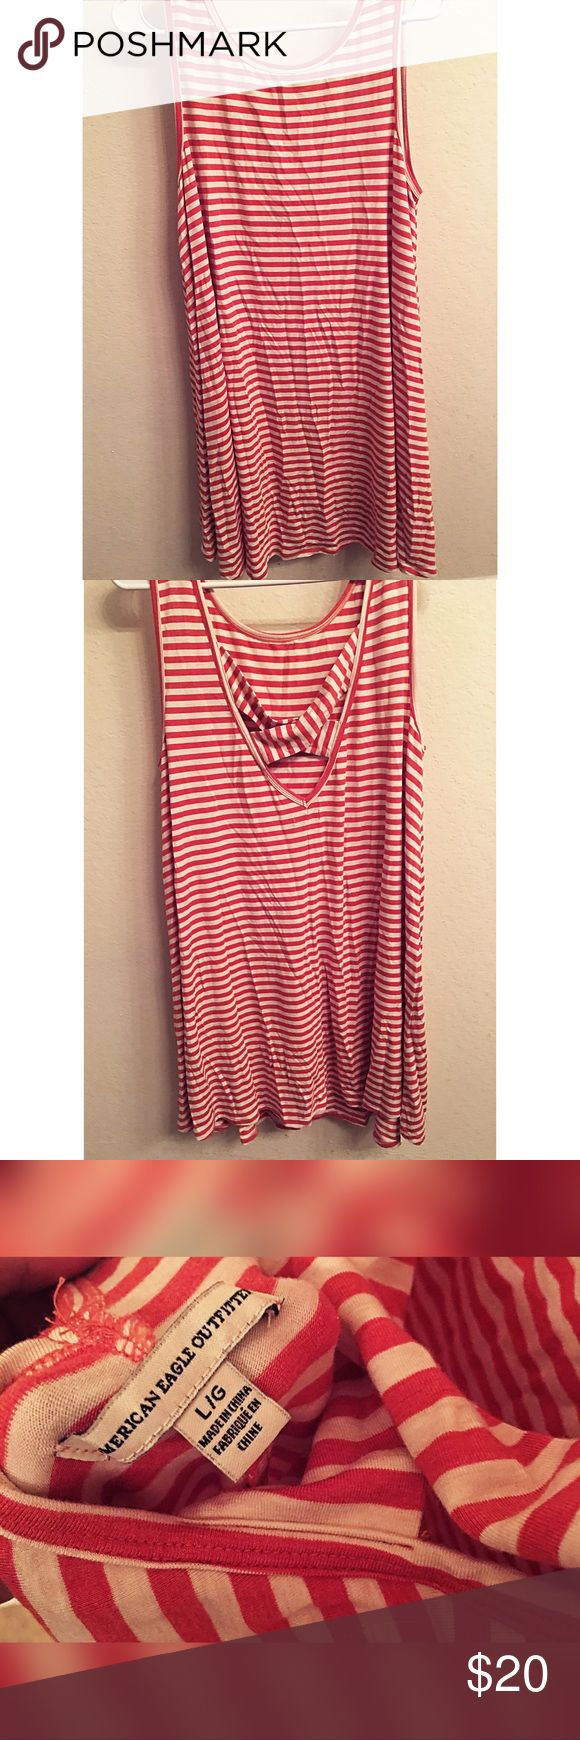 NEW! AE OUTFITTERS Orange Stripped Dress New! Never worn. Lightweight. Comfy fit. American Eagle Outfitters Dresses